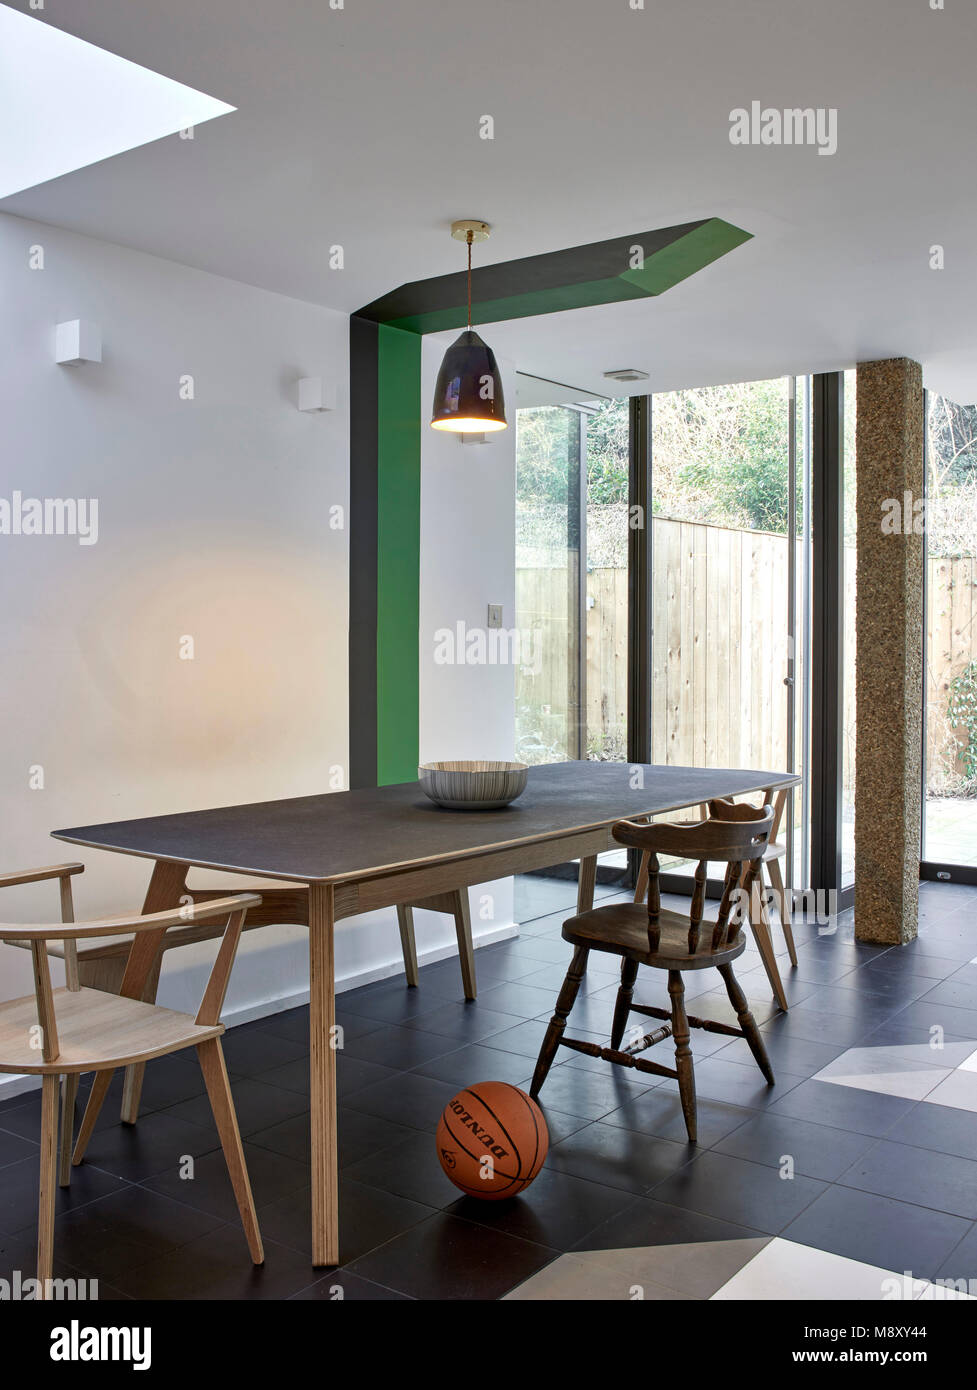 Overall interior view with basketball. Sean Griffiths, London, United Kingdom. Architect: Sean Griffiths , 2018. - Stock Image